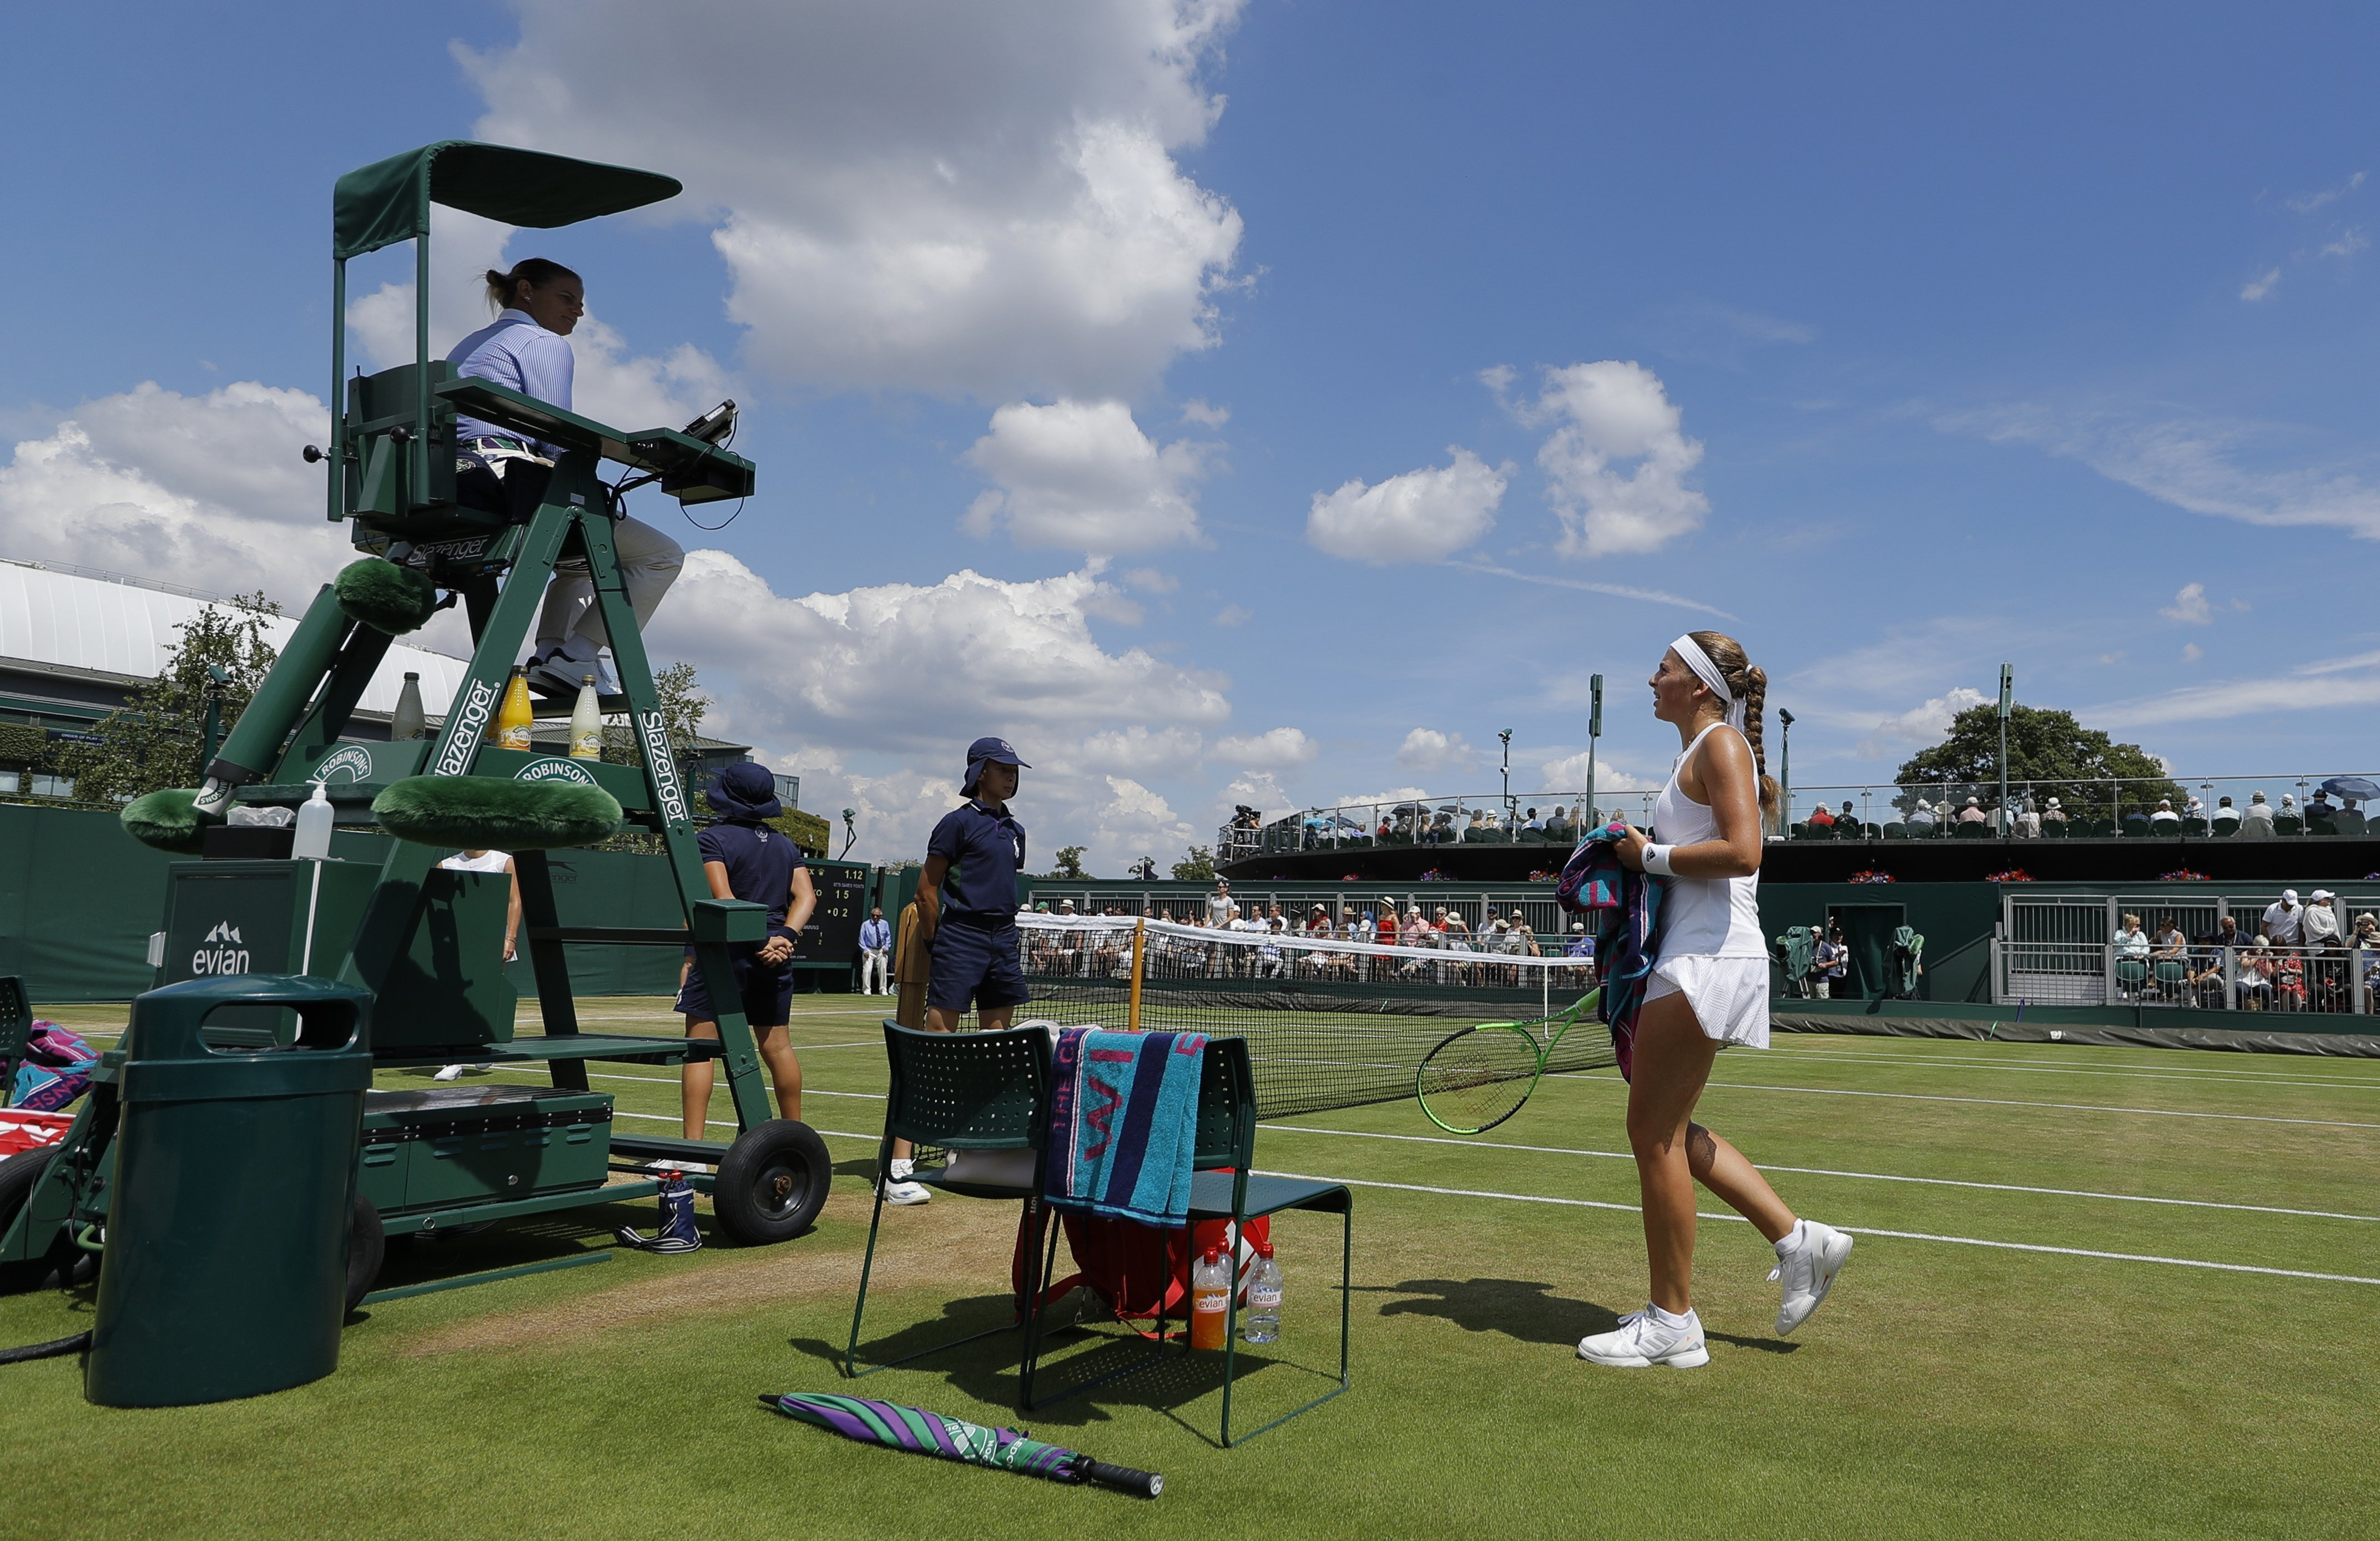 Latvia's Jelena Ostapenko returns to her seat during a change of ends break in her Women's Singles Match against Ukraine's Elina Svitolina on day seven at the Wimbledon Tennis Championships in London Monday, July 10, 2017. (AP Photo/Alastair Grant)